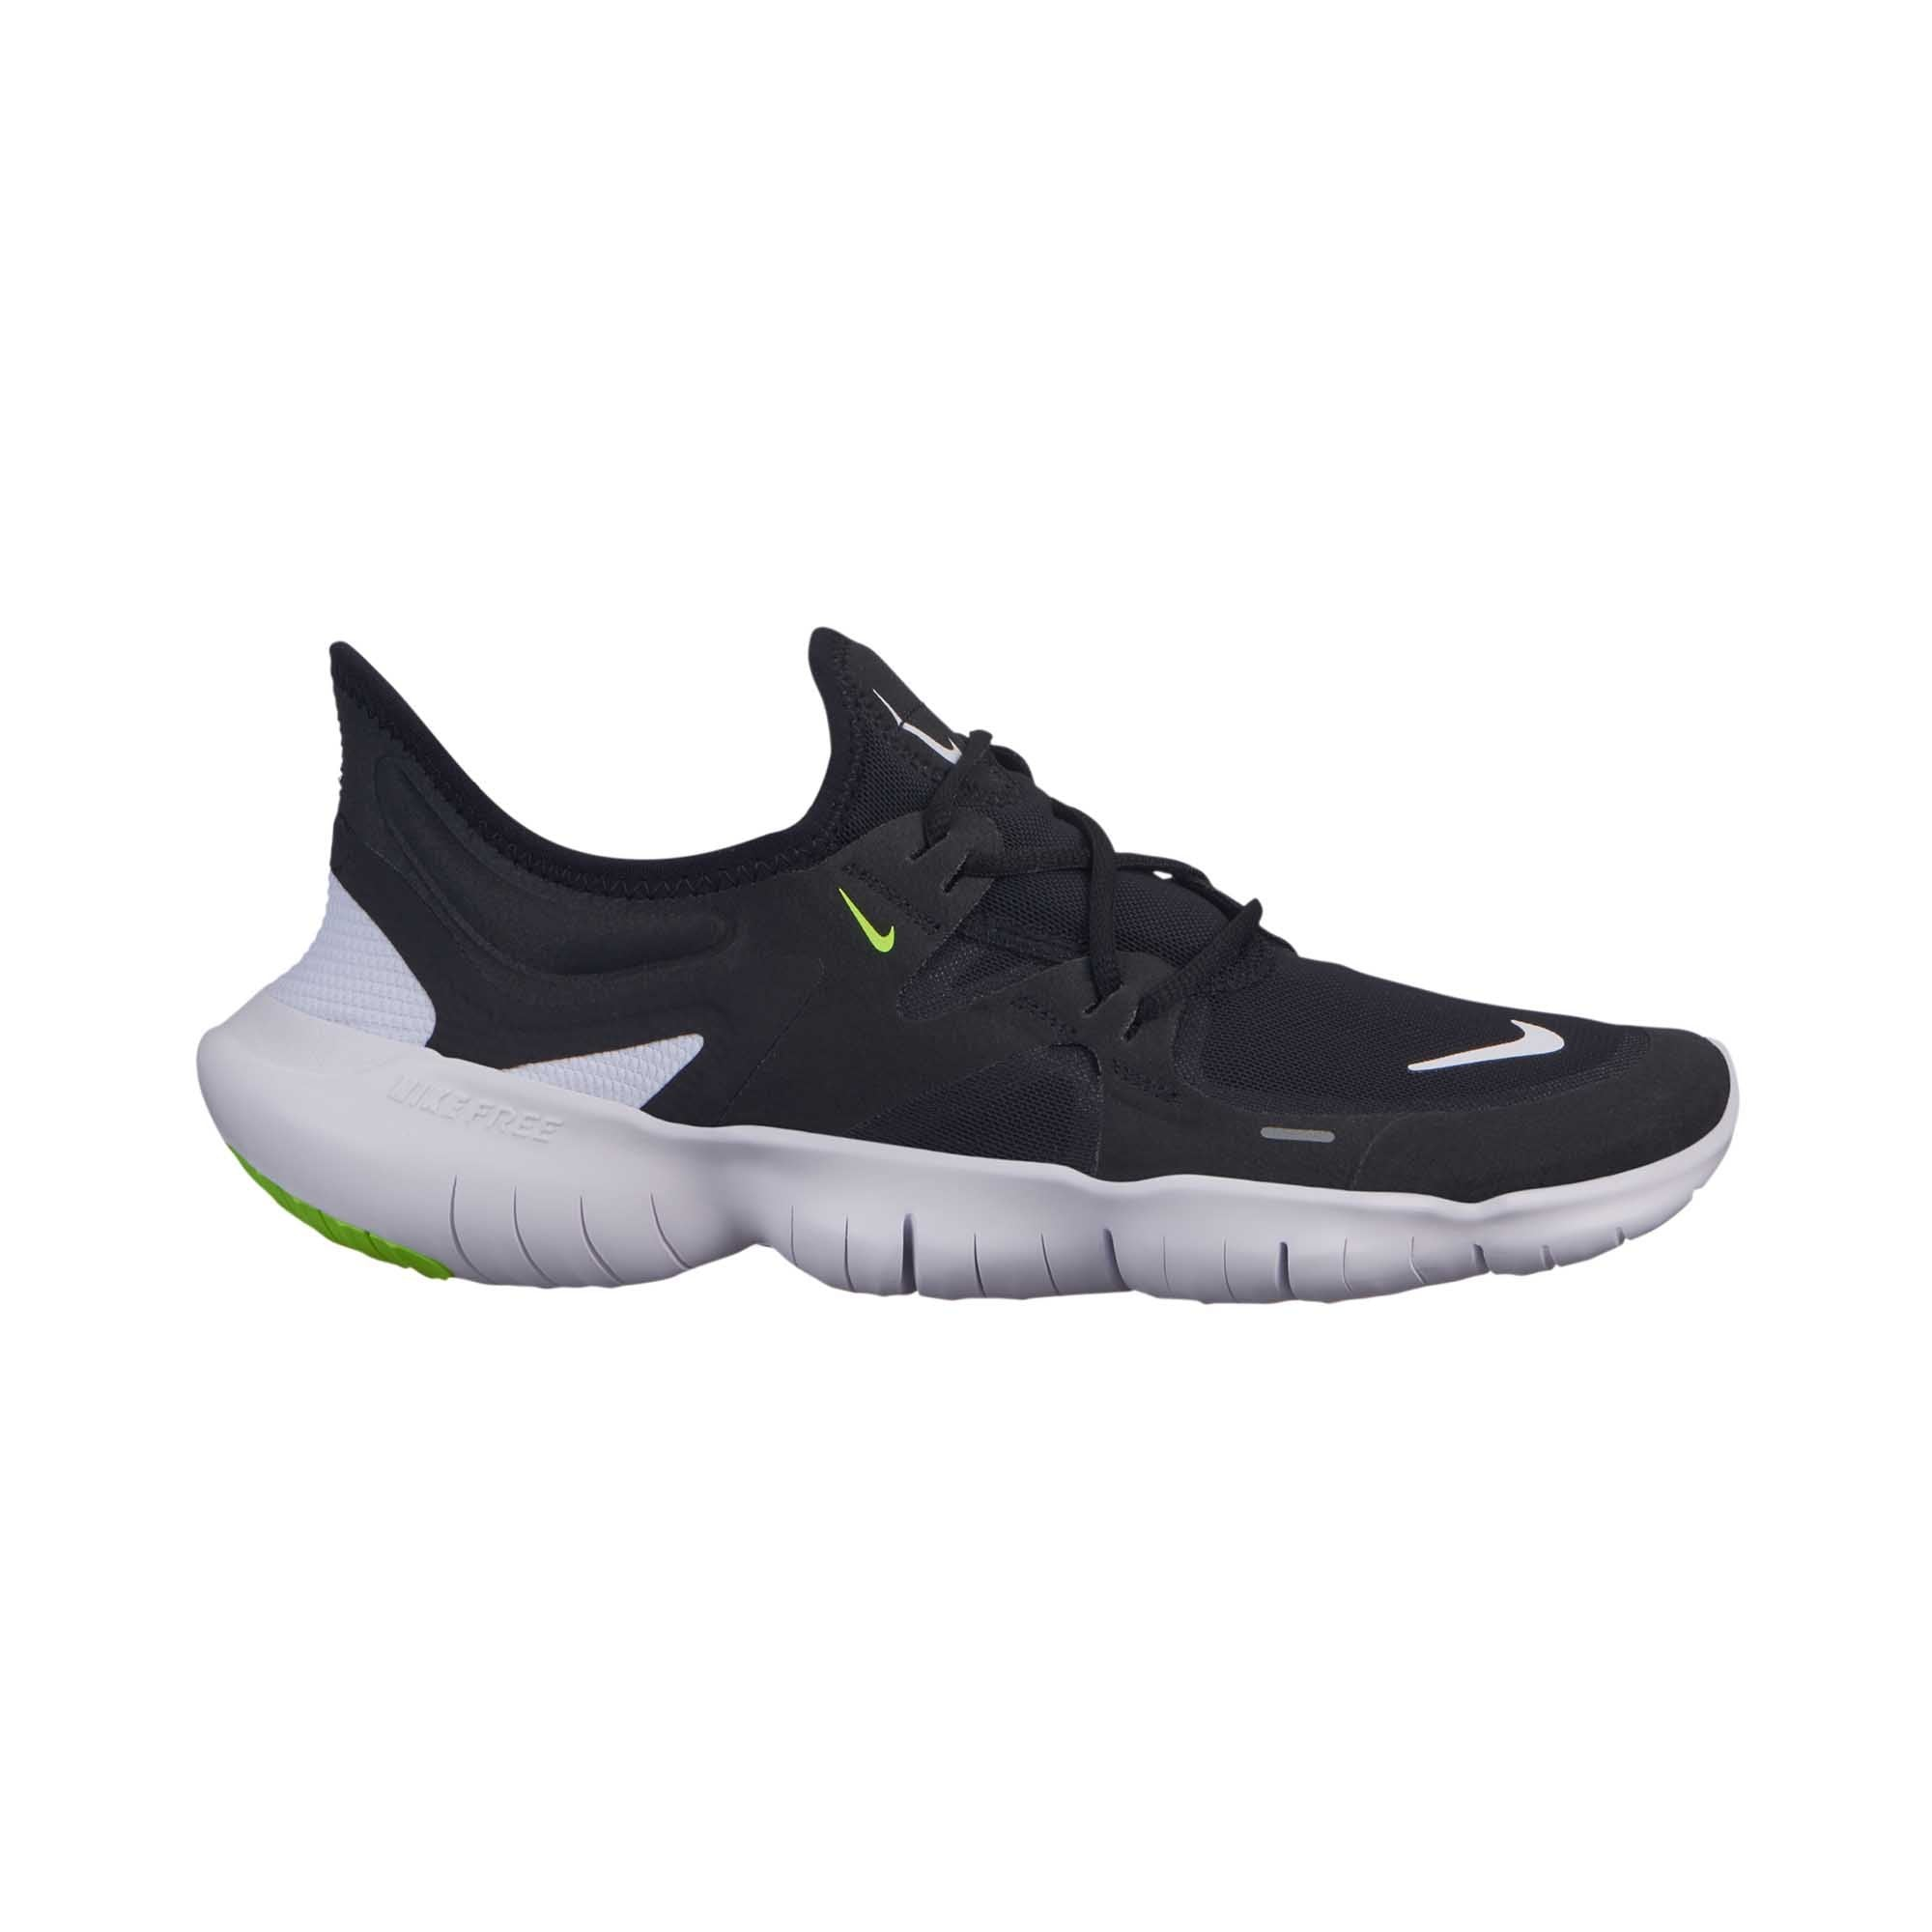 quality design 229a0 52cf7 Buy Nike Women Free Run 5.0 Running Shoes Online in Singapore | Royal  Sporting House